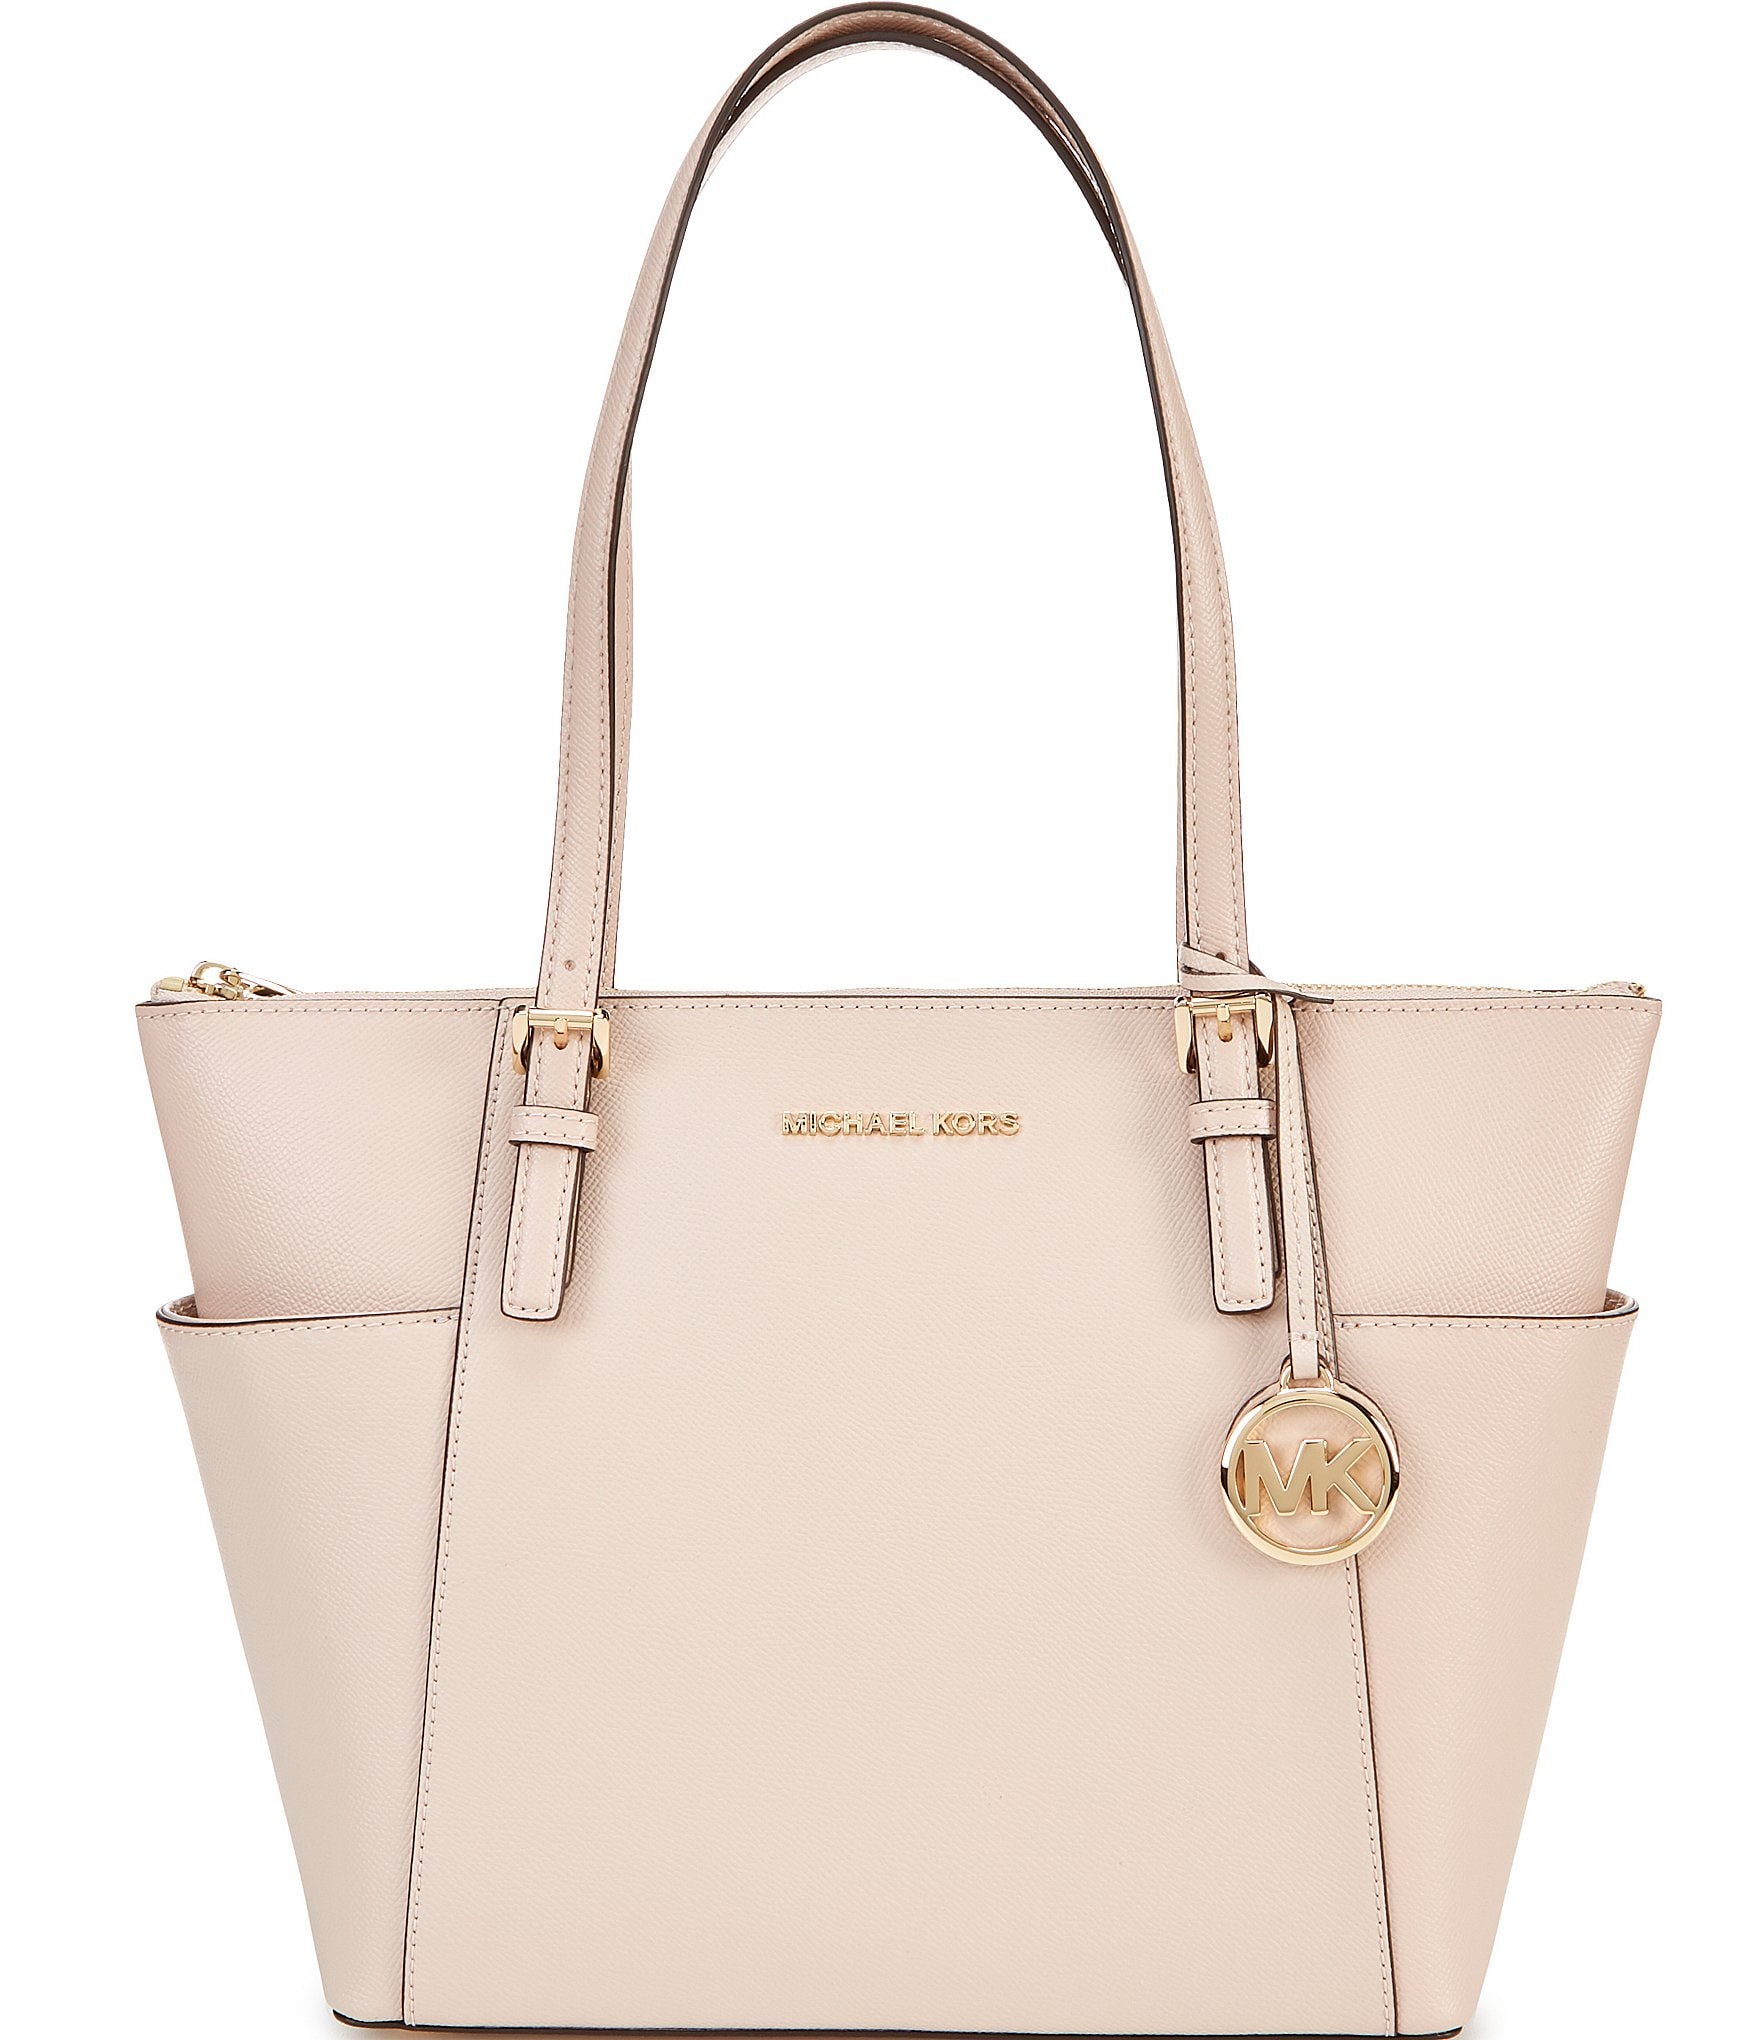 4aca8e4b76b9 MICHAEL Michael Kors Jet Set East/West Tote Bag | Dillard's